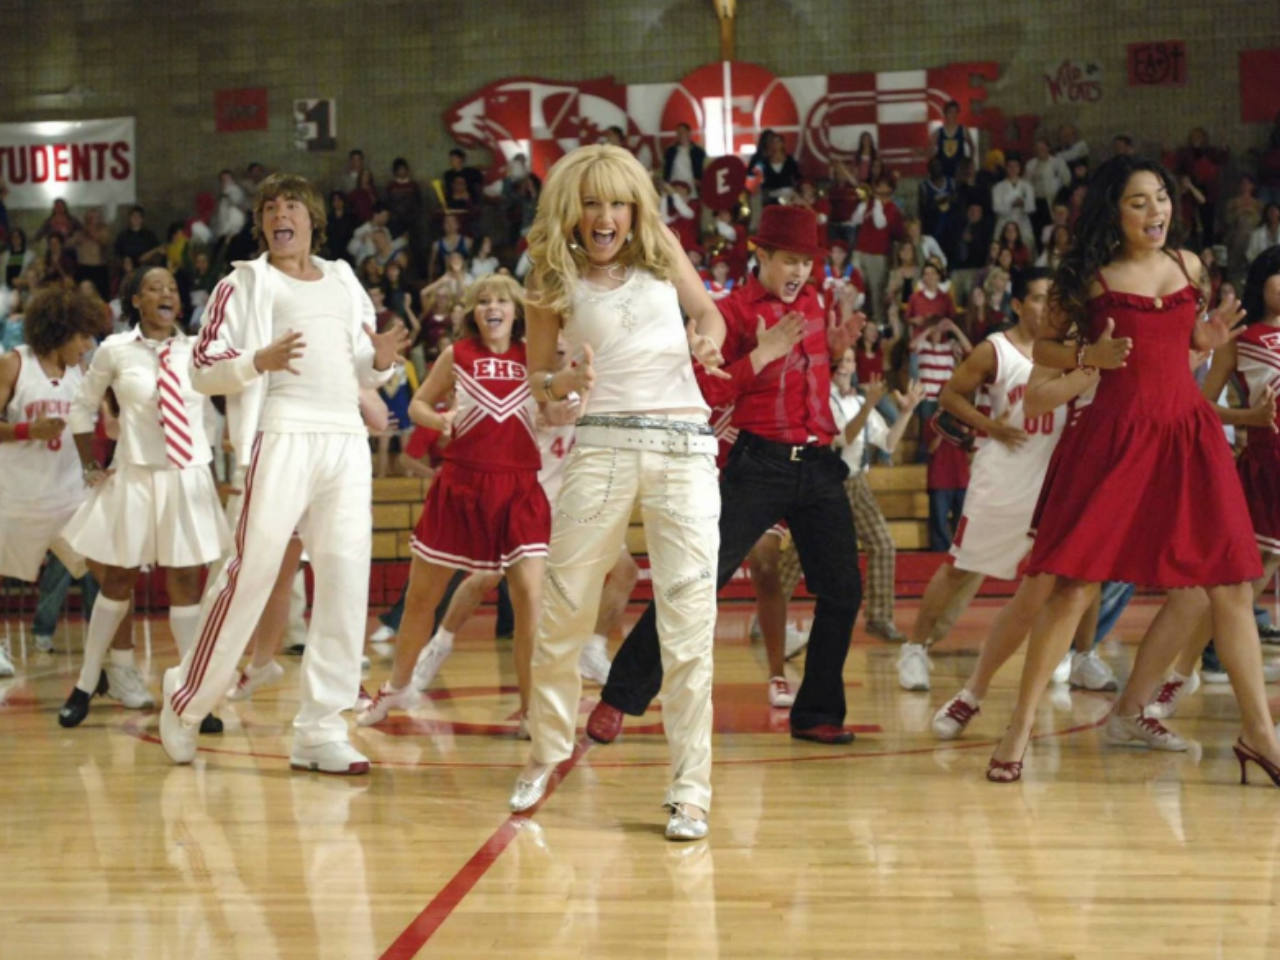 A still from the kids' movie High School Musical